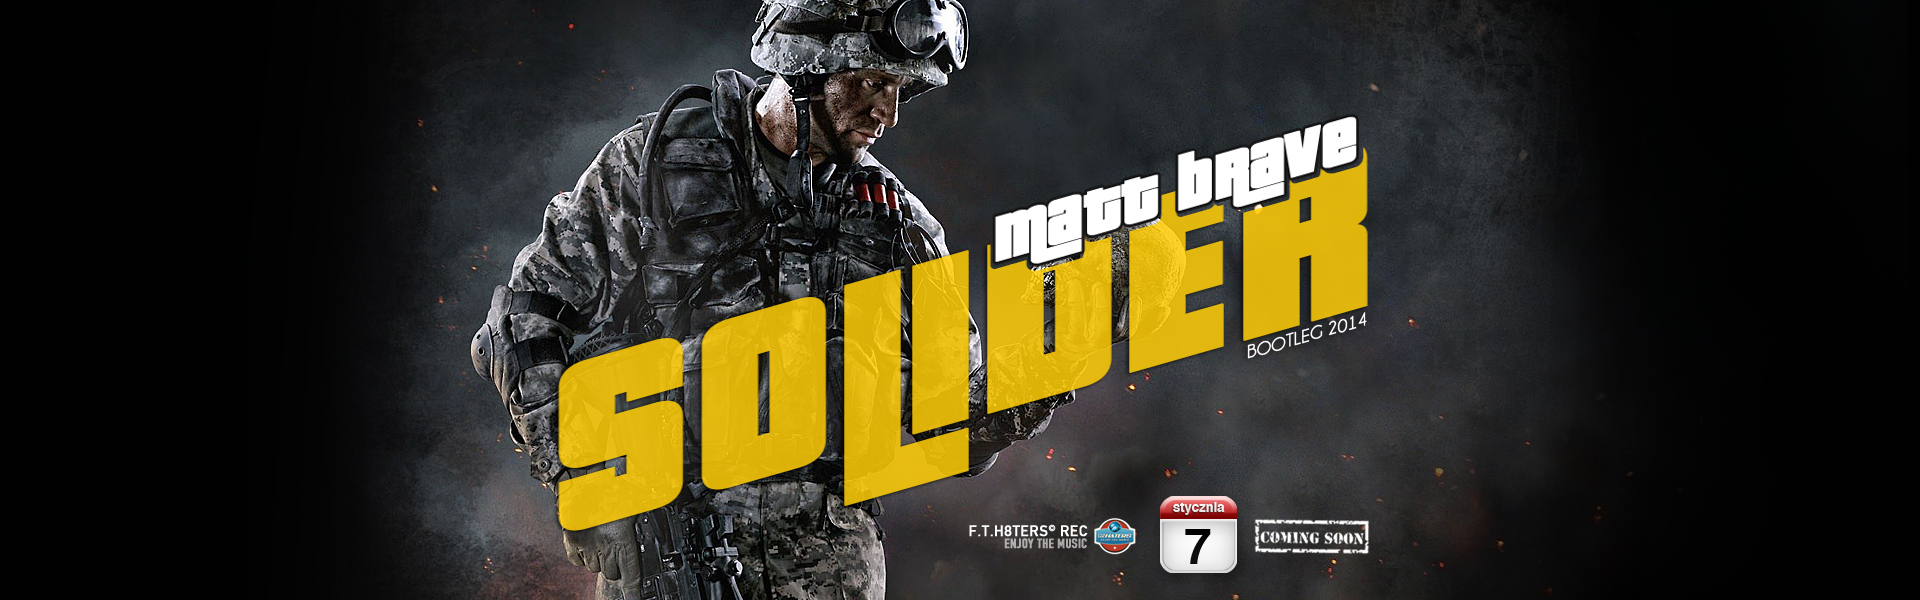 http://www.rtiaevents.pl/wp-content/uploads/2014/11/MattBrave-COVER-solidersd.jpg